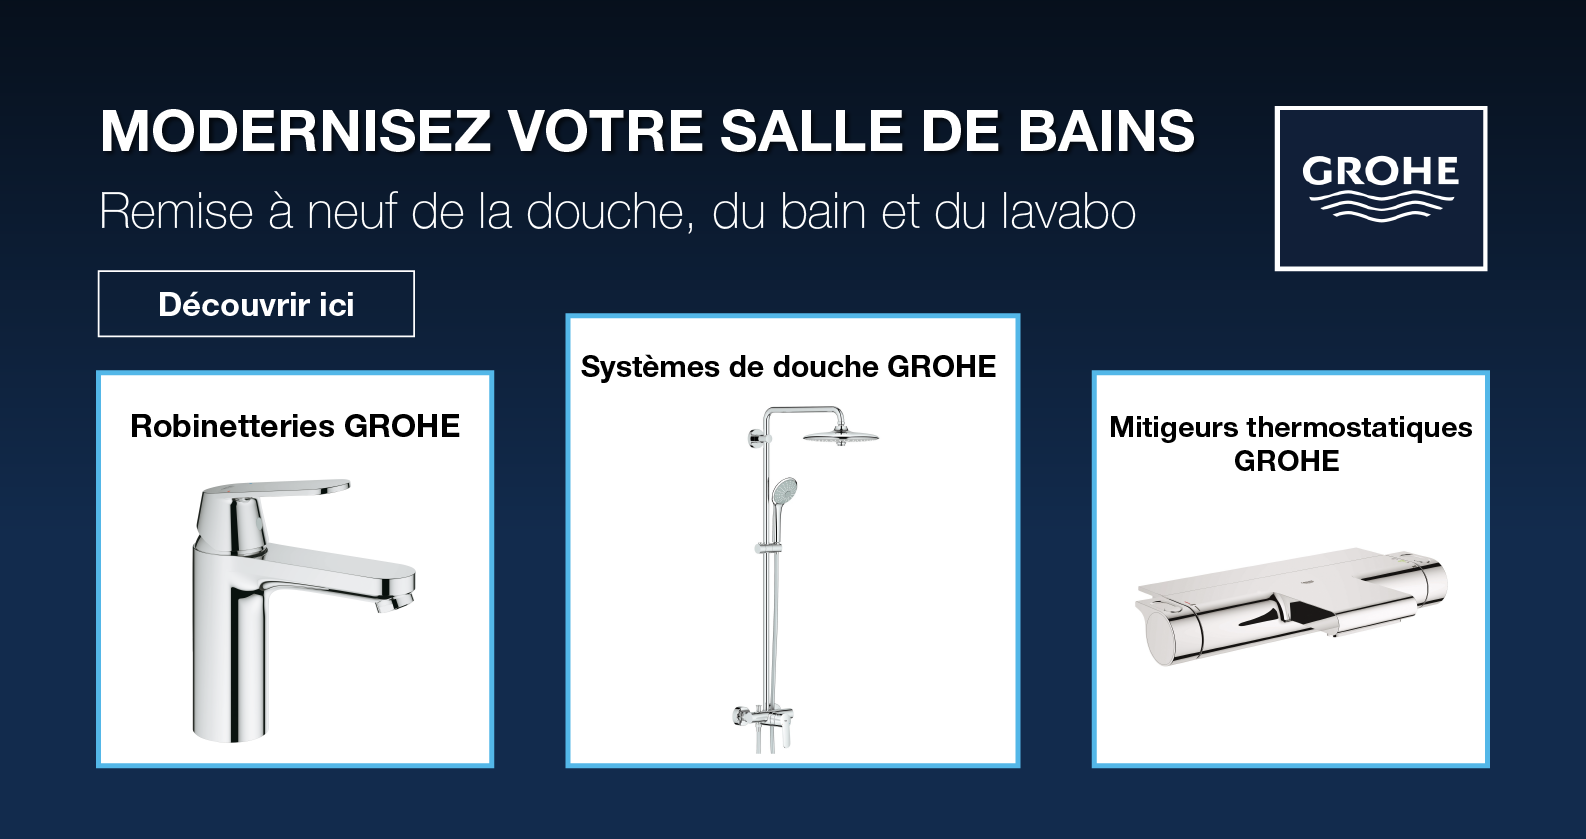 GROHE Promos